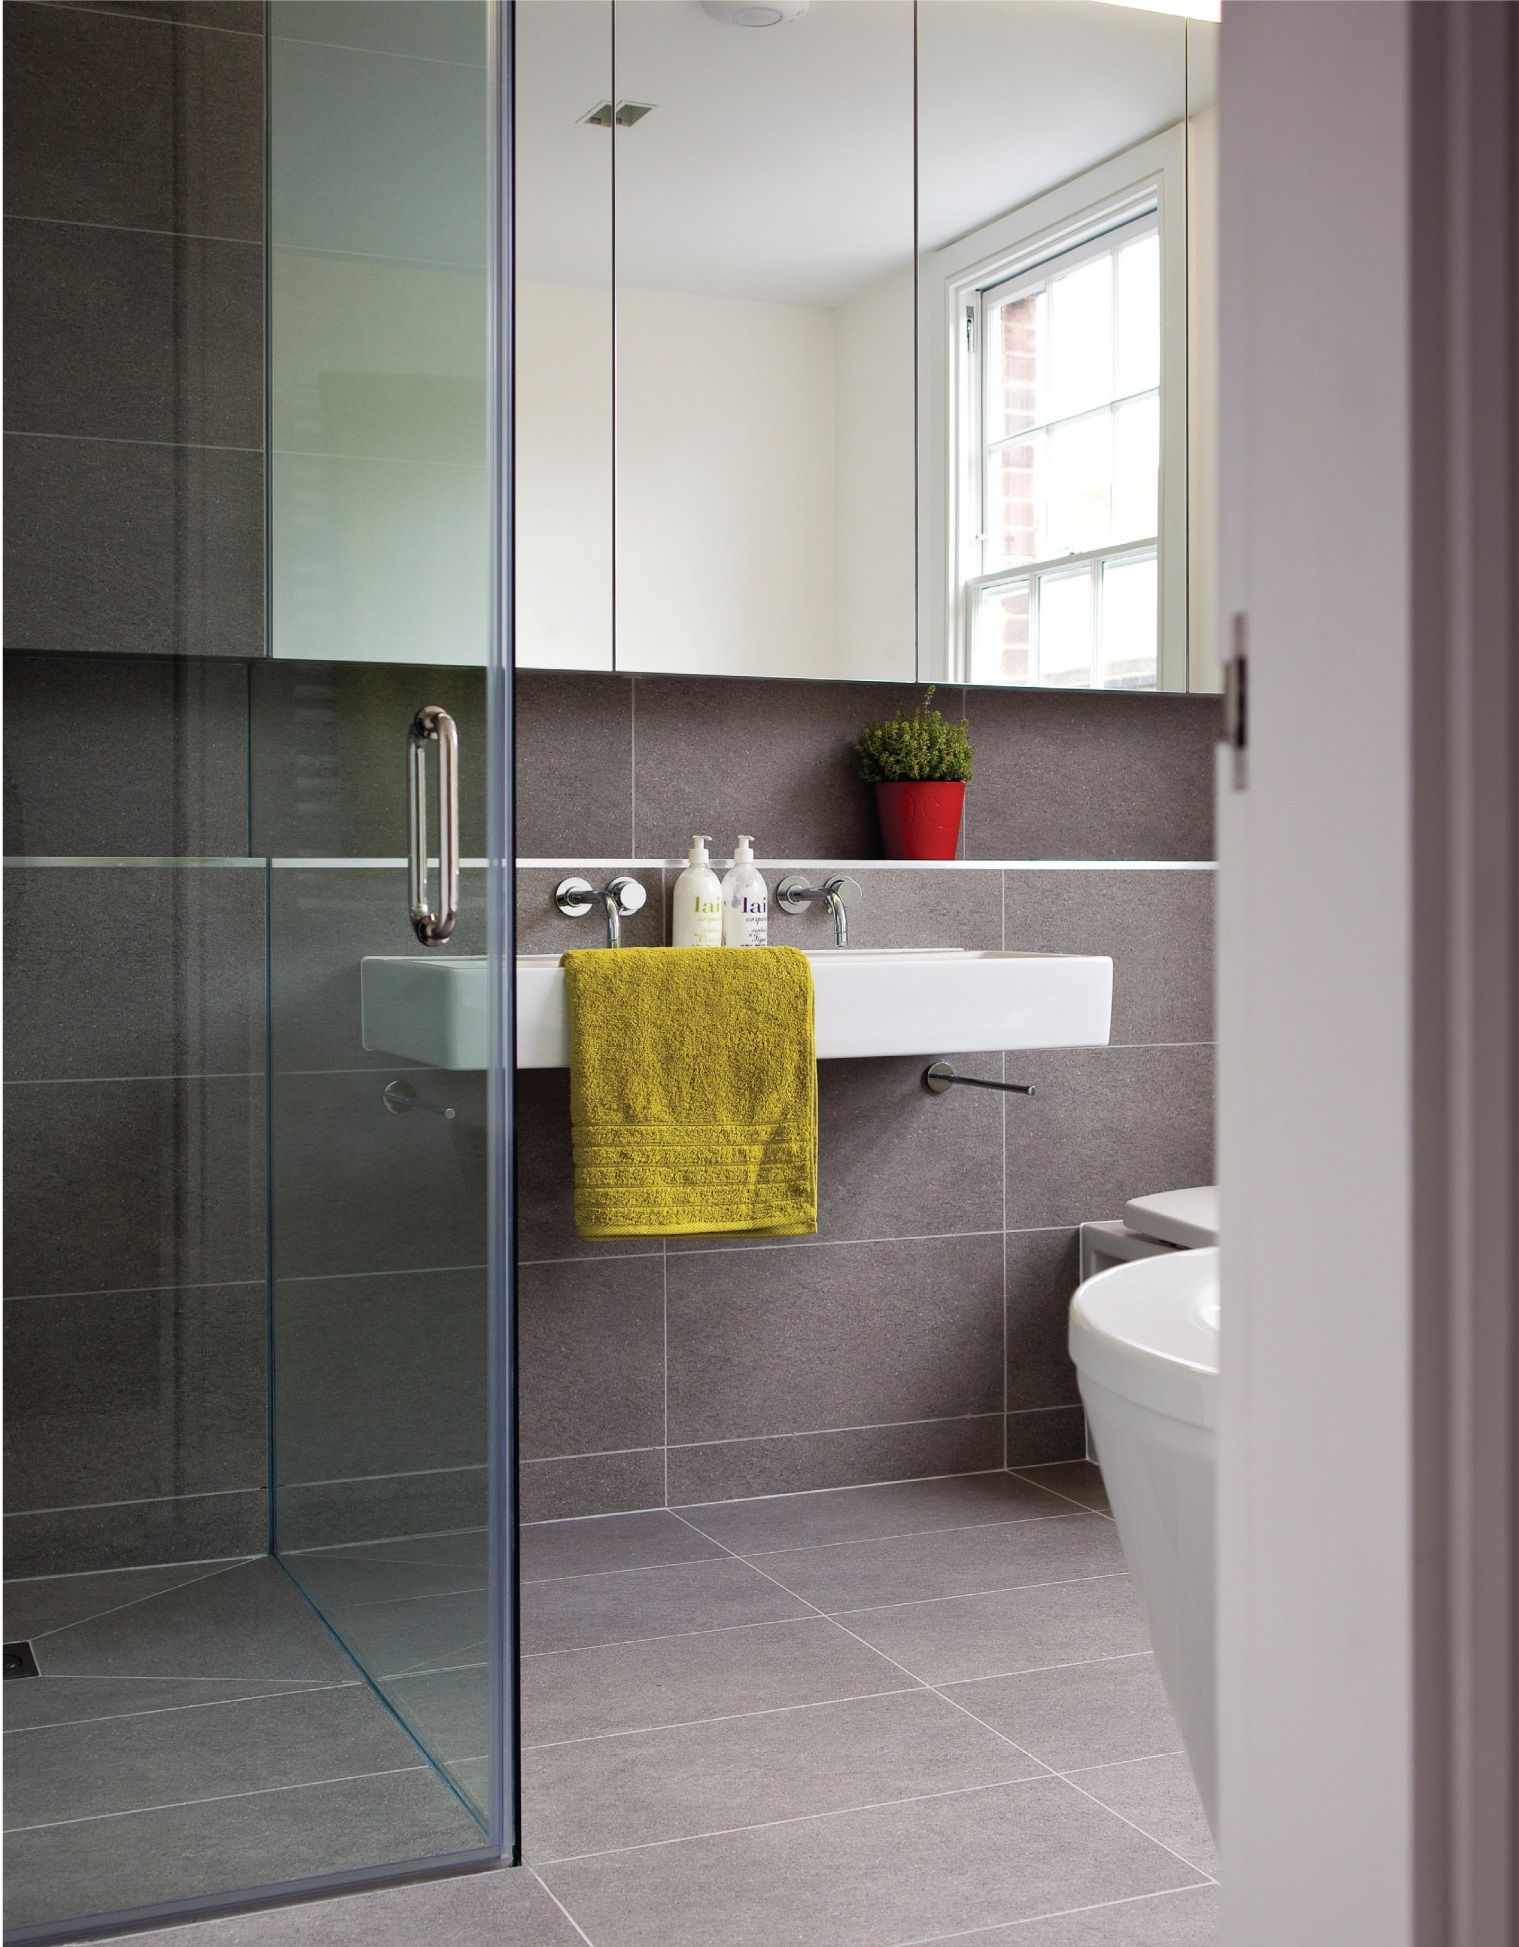 Curbless Shower With Large Format Tiles On Floor And Wall Floating Vanity